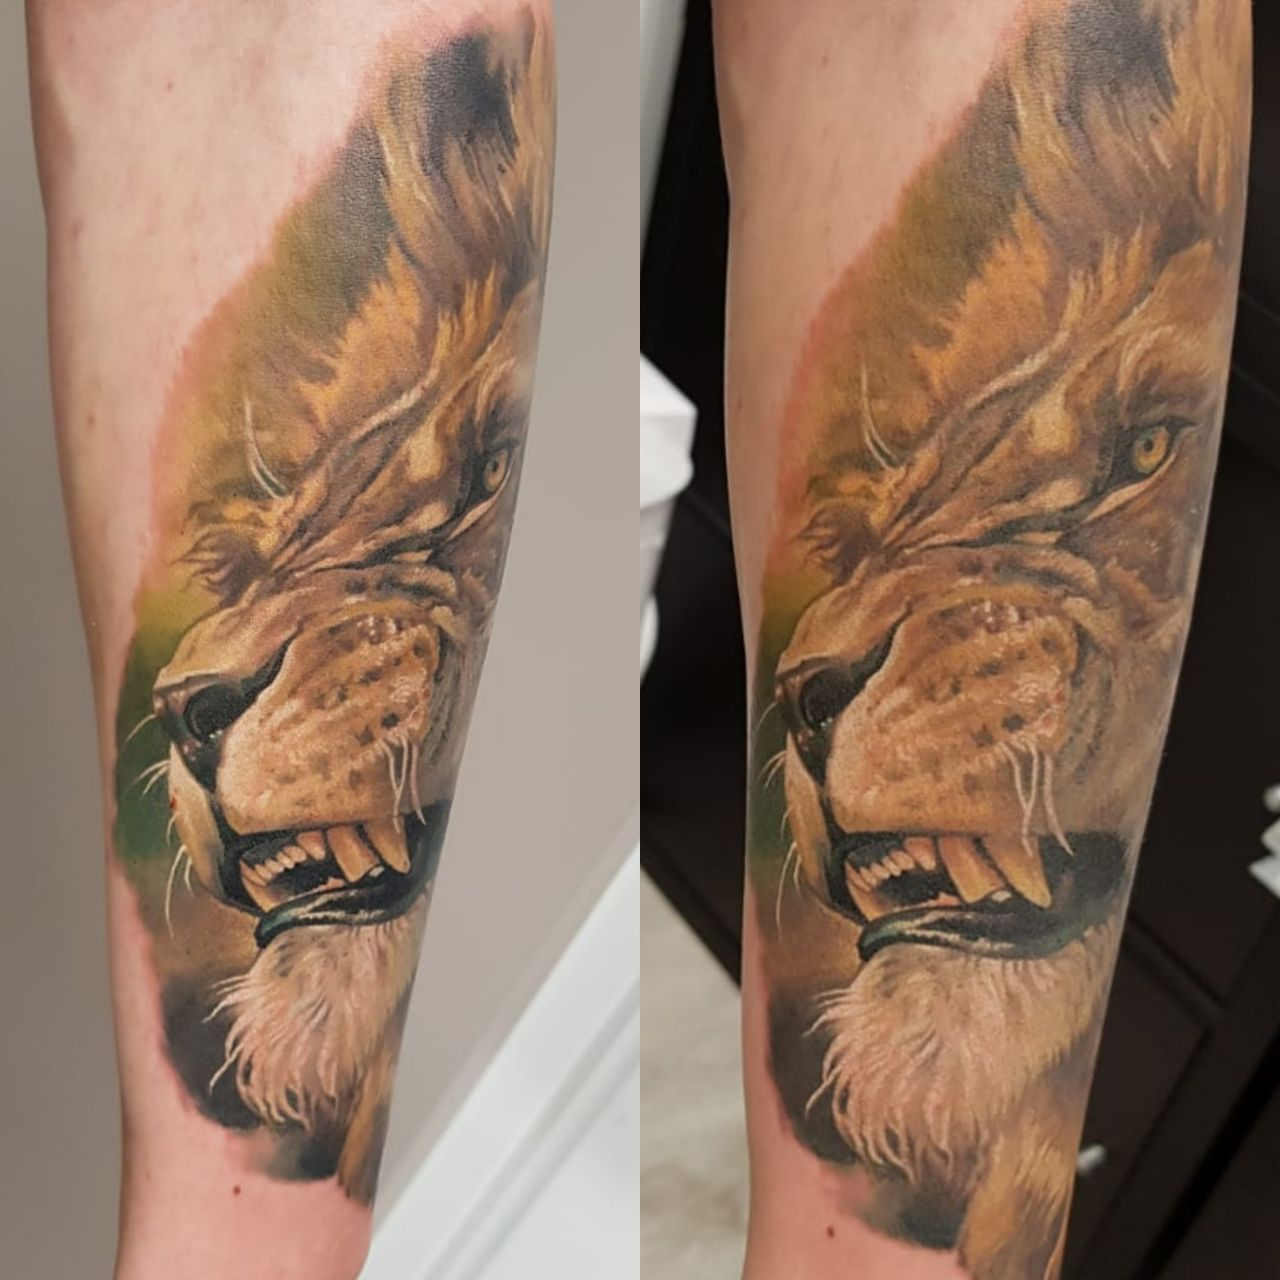 Realistic Color Lion Portrait Tattoo Made By Giena Revess A Traveling Tattoo Artist Sleeve Tattoo Tattoo Animal Tattoo Artists Sleeve Tattoos Color Tattoo